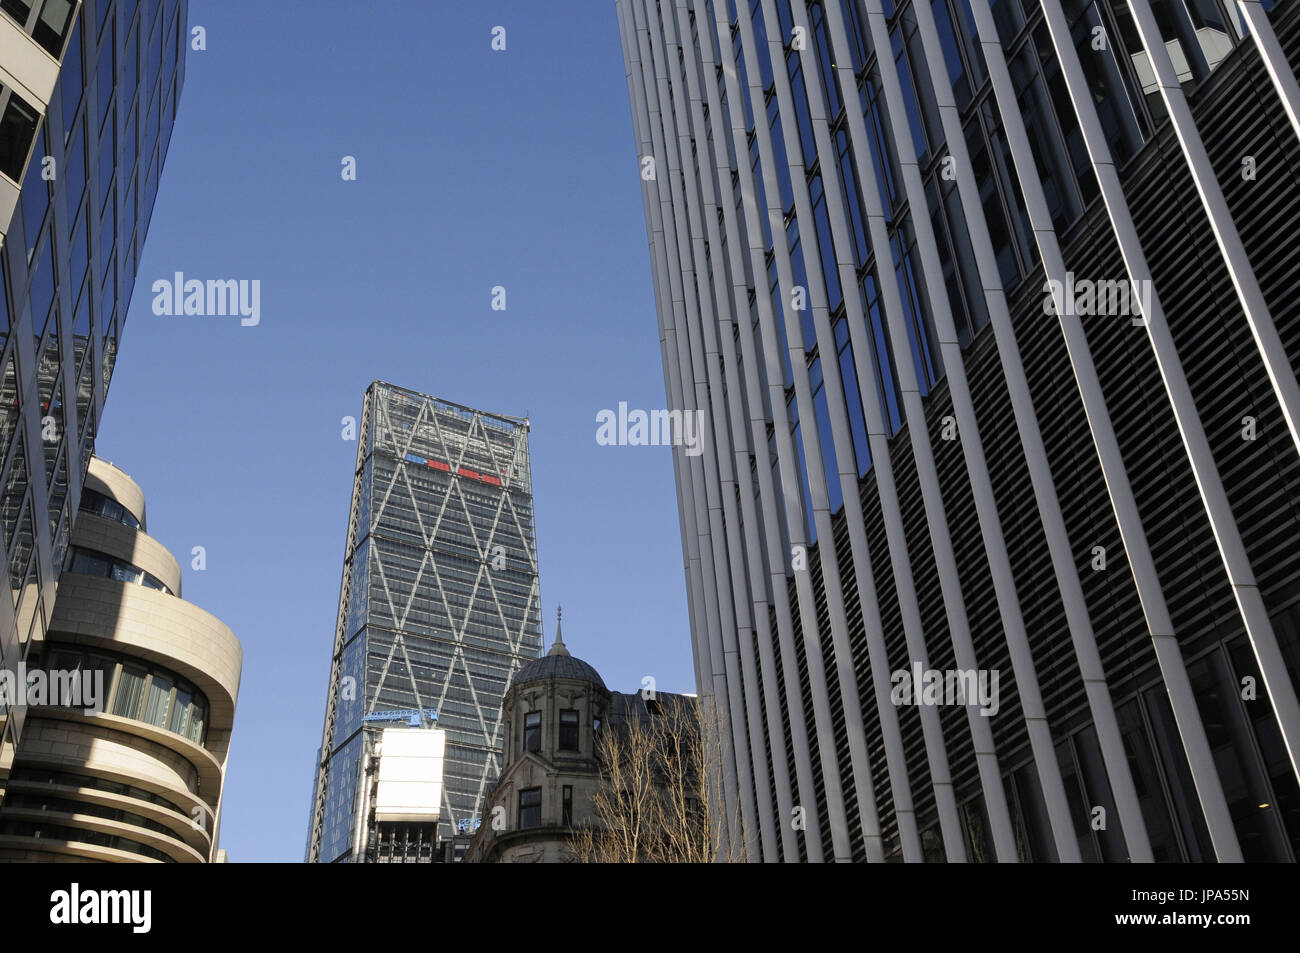 The Modern skyline of the City of London with The Cheesegrater and Walkie Talkie Buildings London England - Stock Image